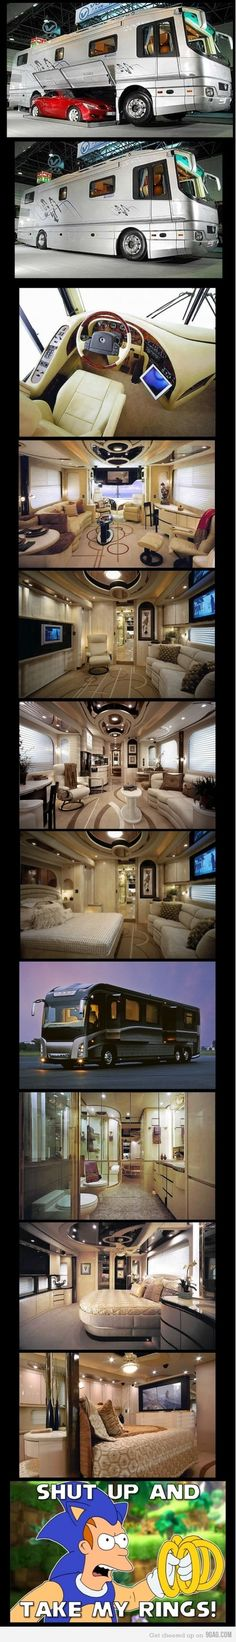 I could live in this and travel the country!